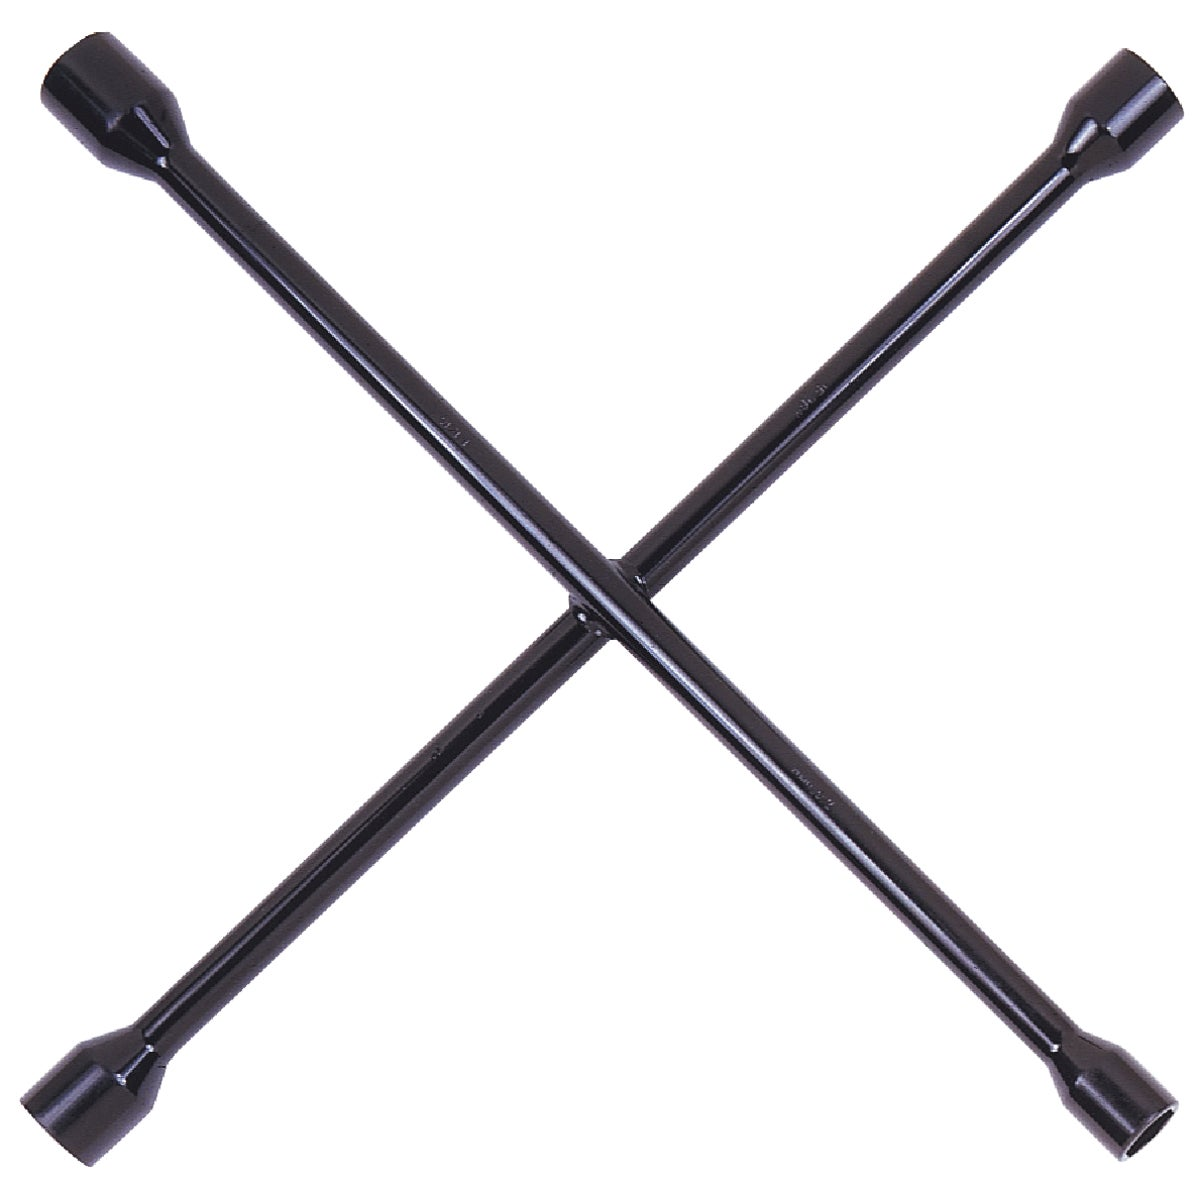 "22"" 4-WAY LUG WRENCH - 84422 by Custom Accessories"